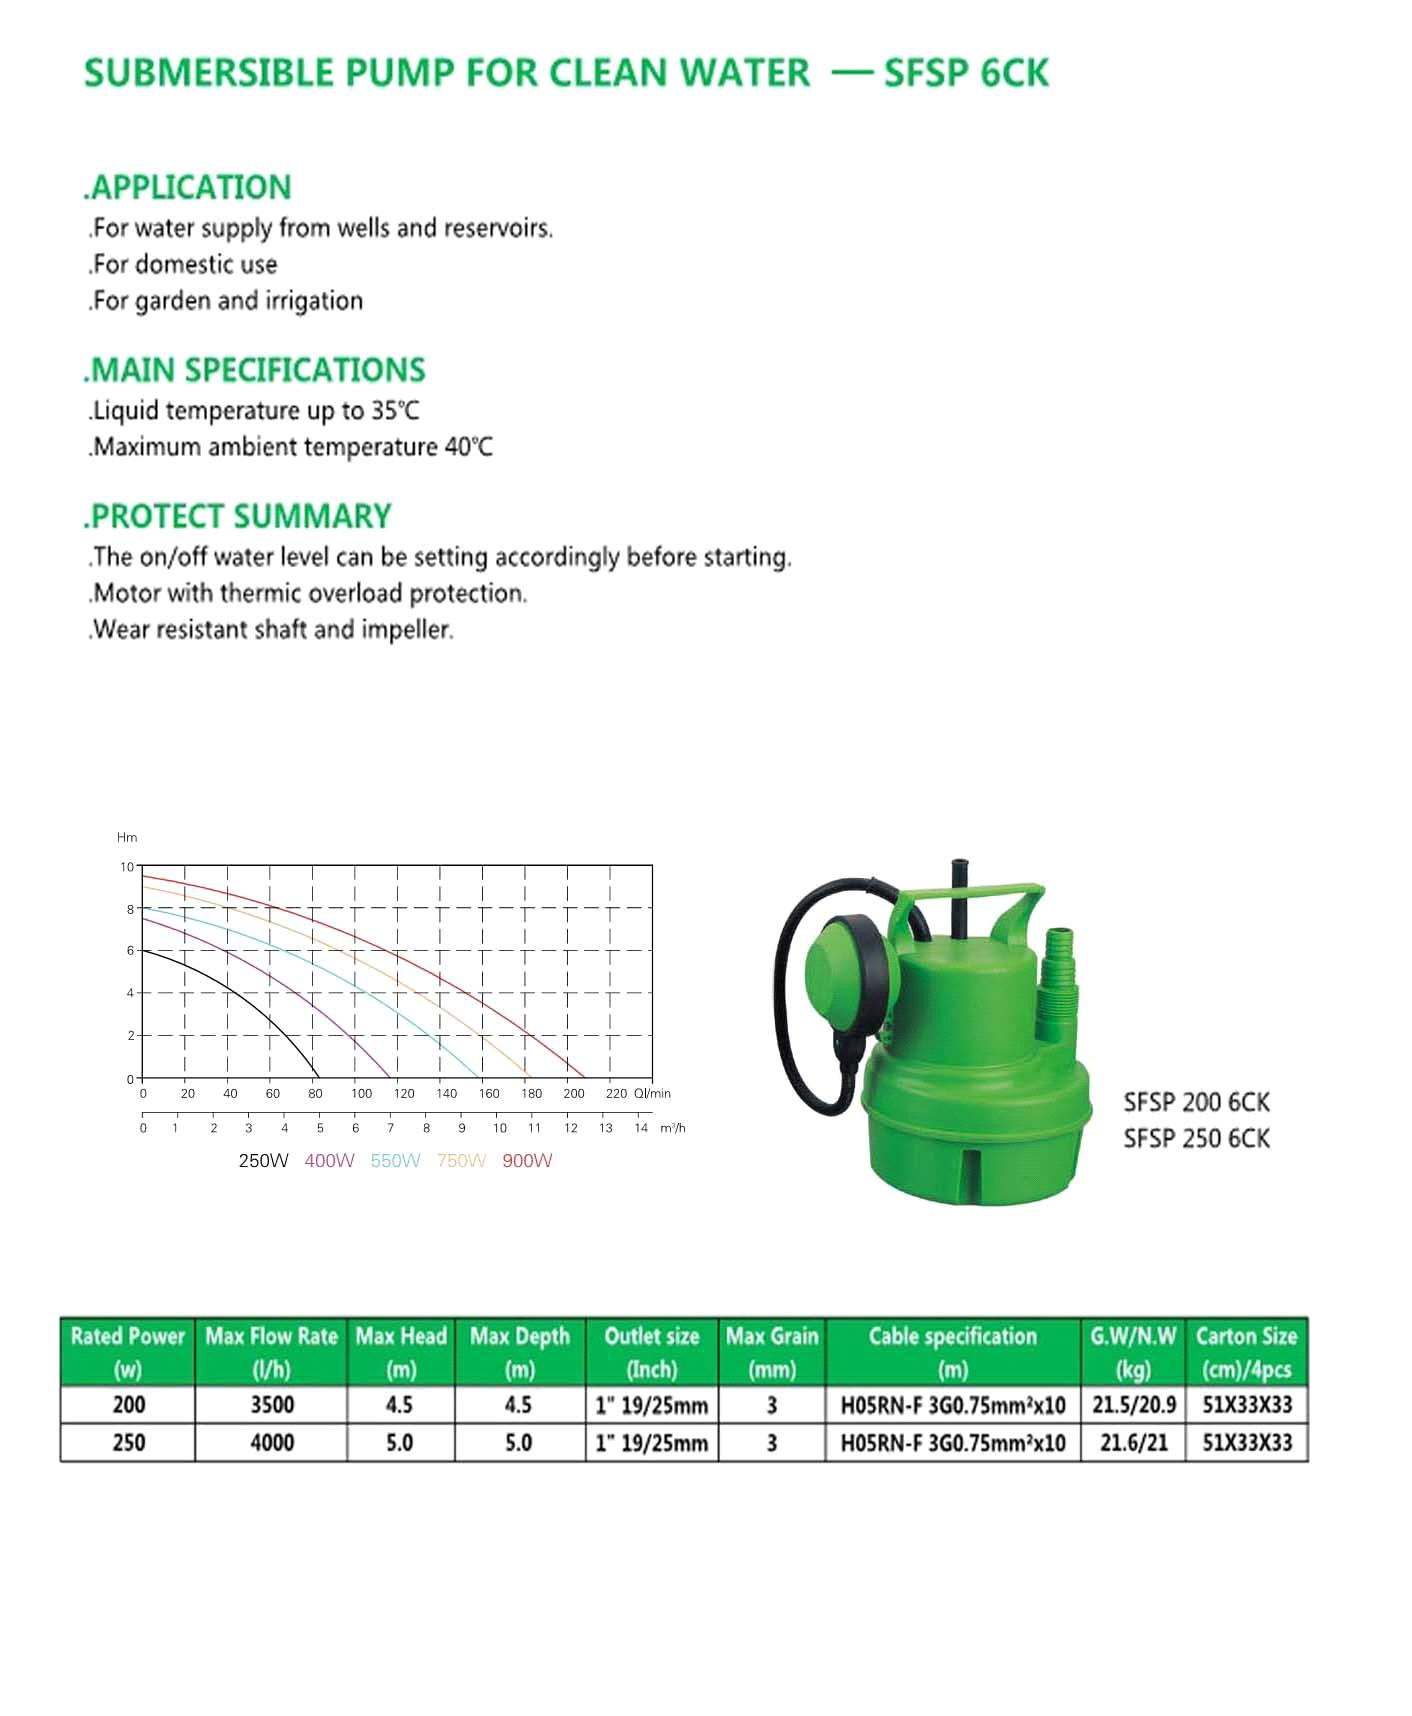 SUBMERSIBLE PUMP FOR CLEAN WATER       SFSP 6CK